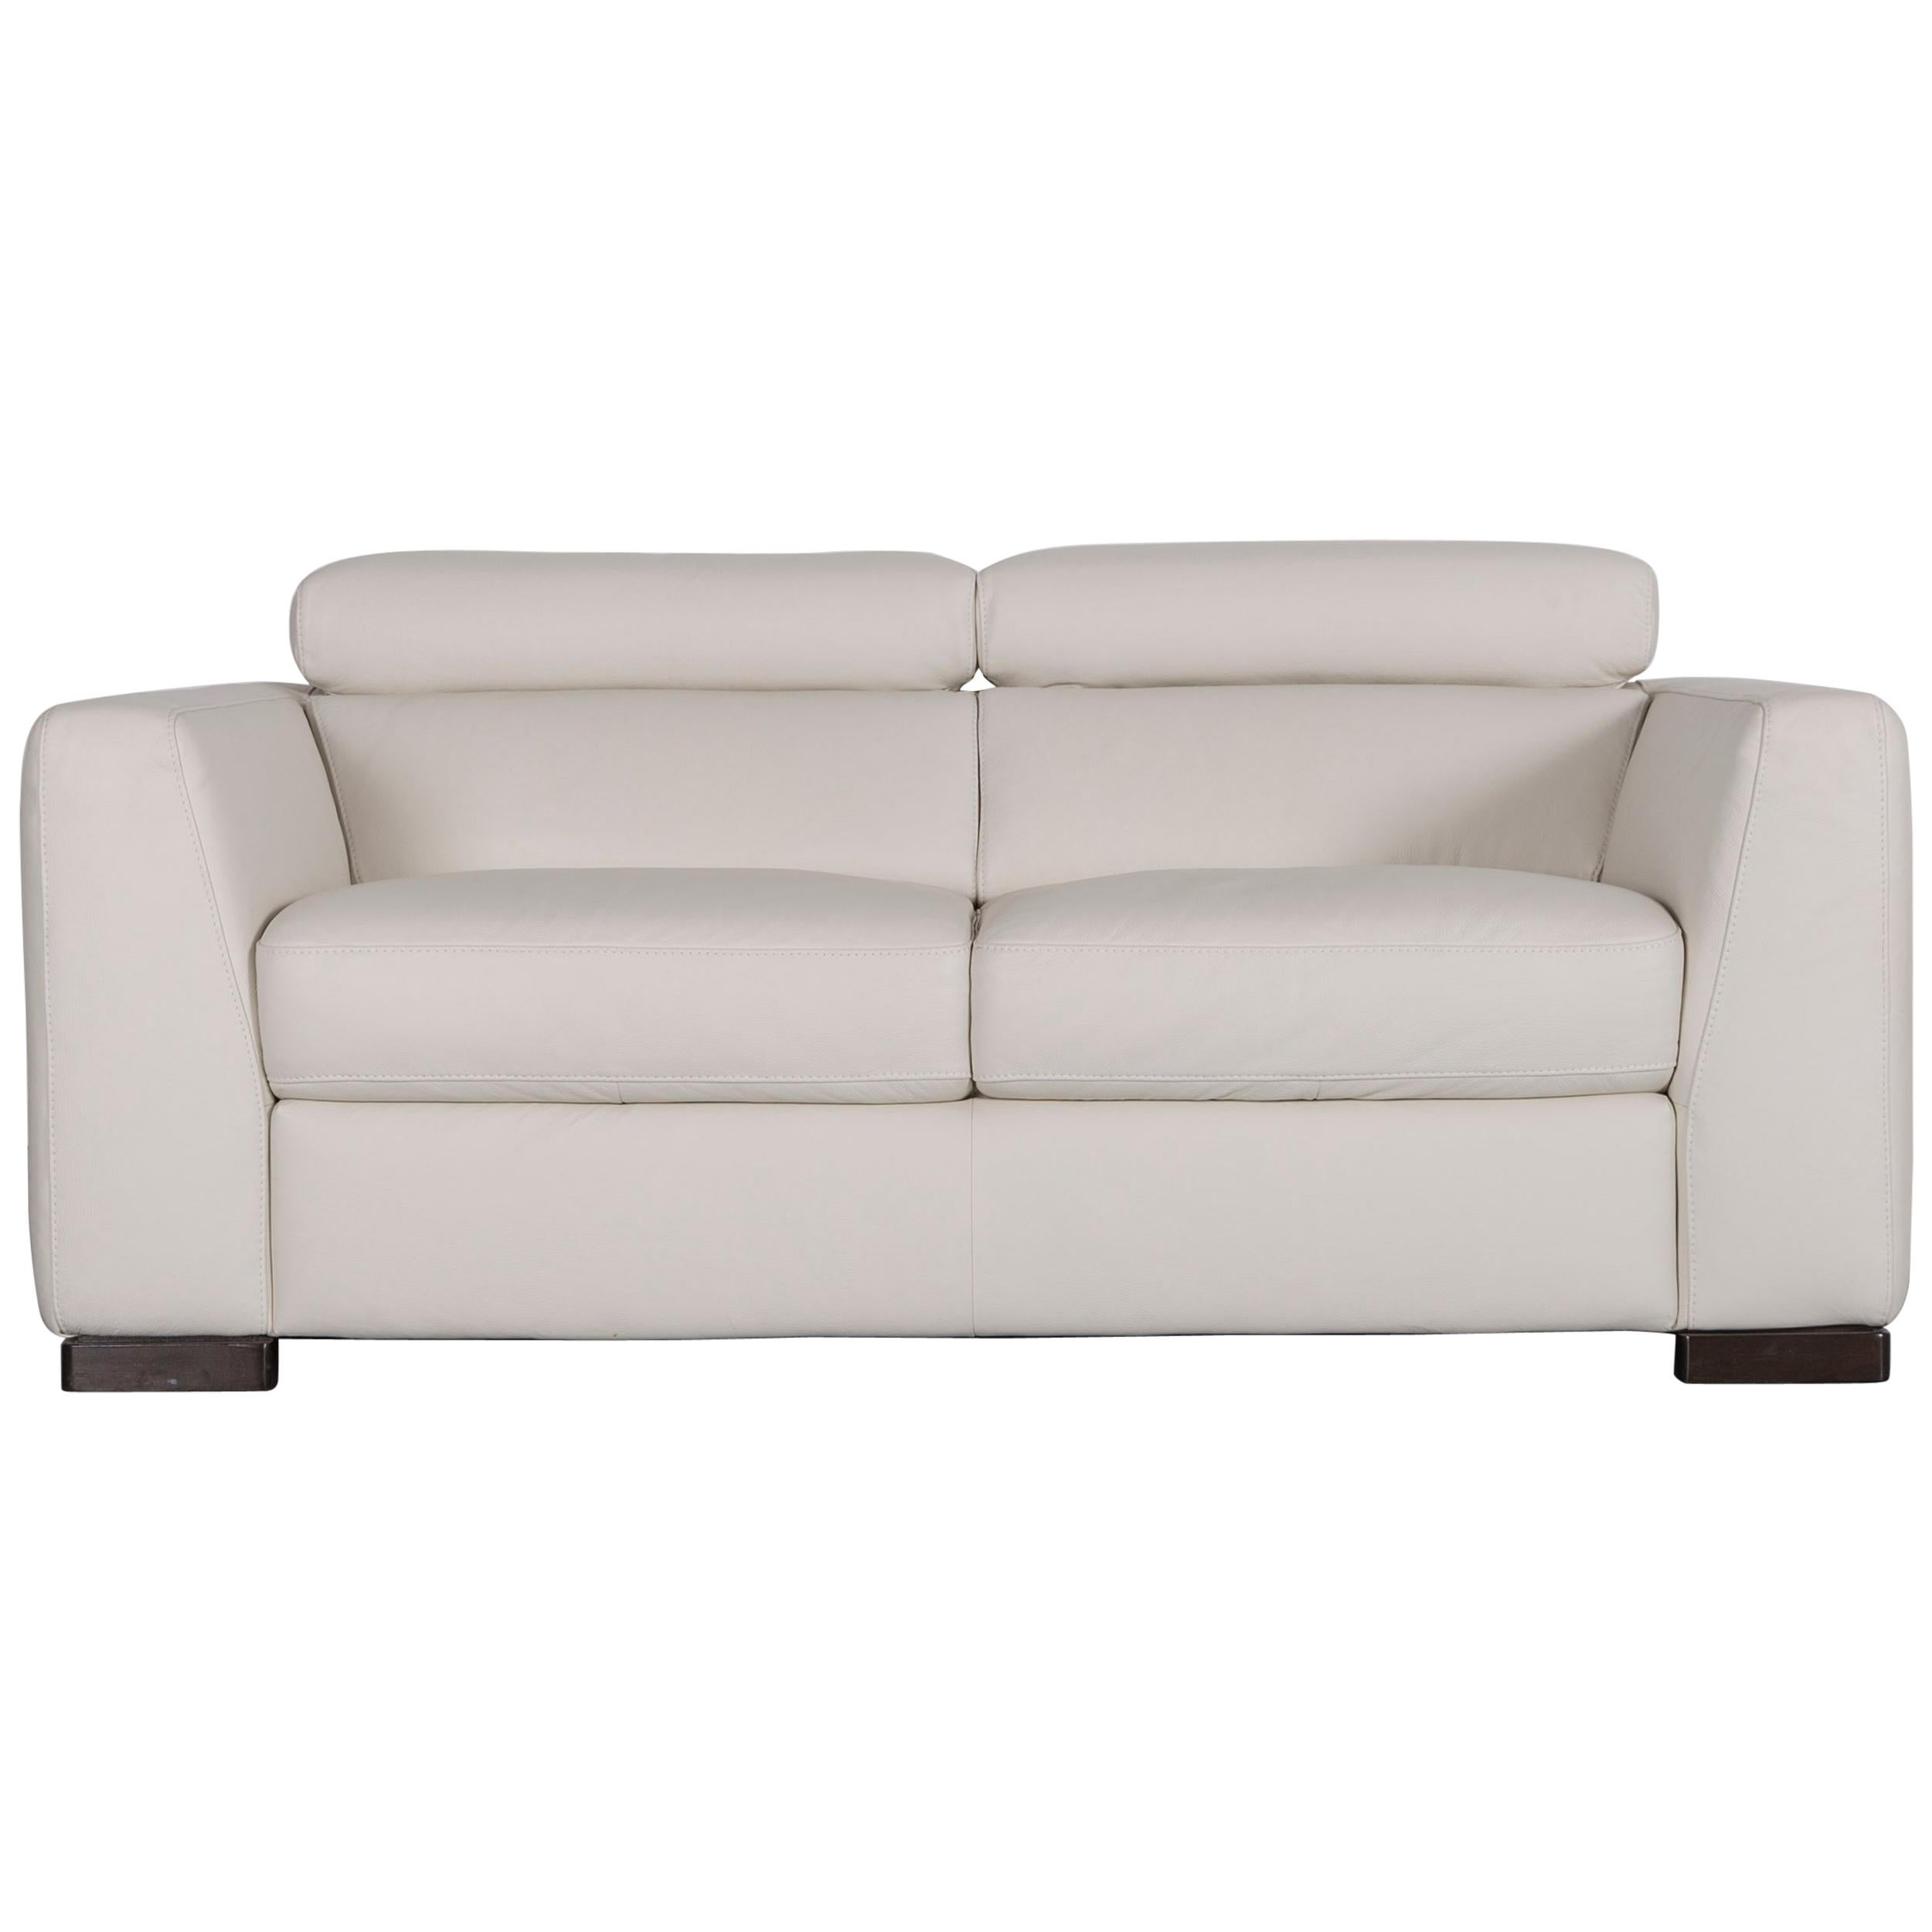 Italsofa Designer Leather Sofa Crème White Modern Two Seat Couch